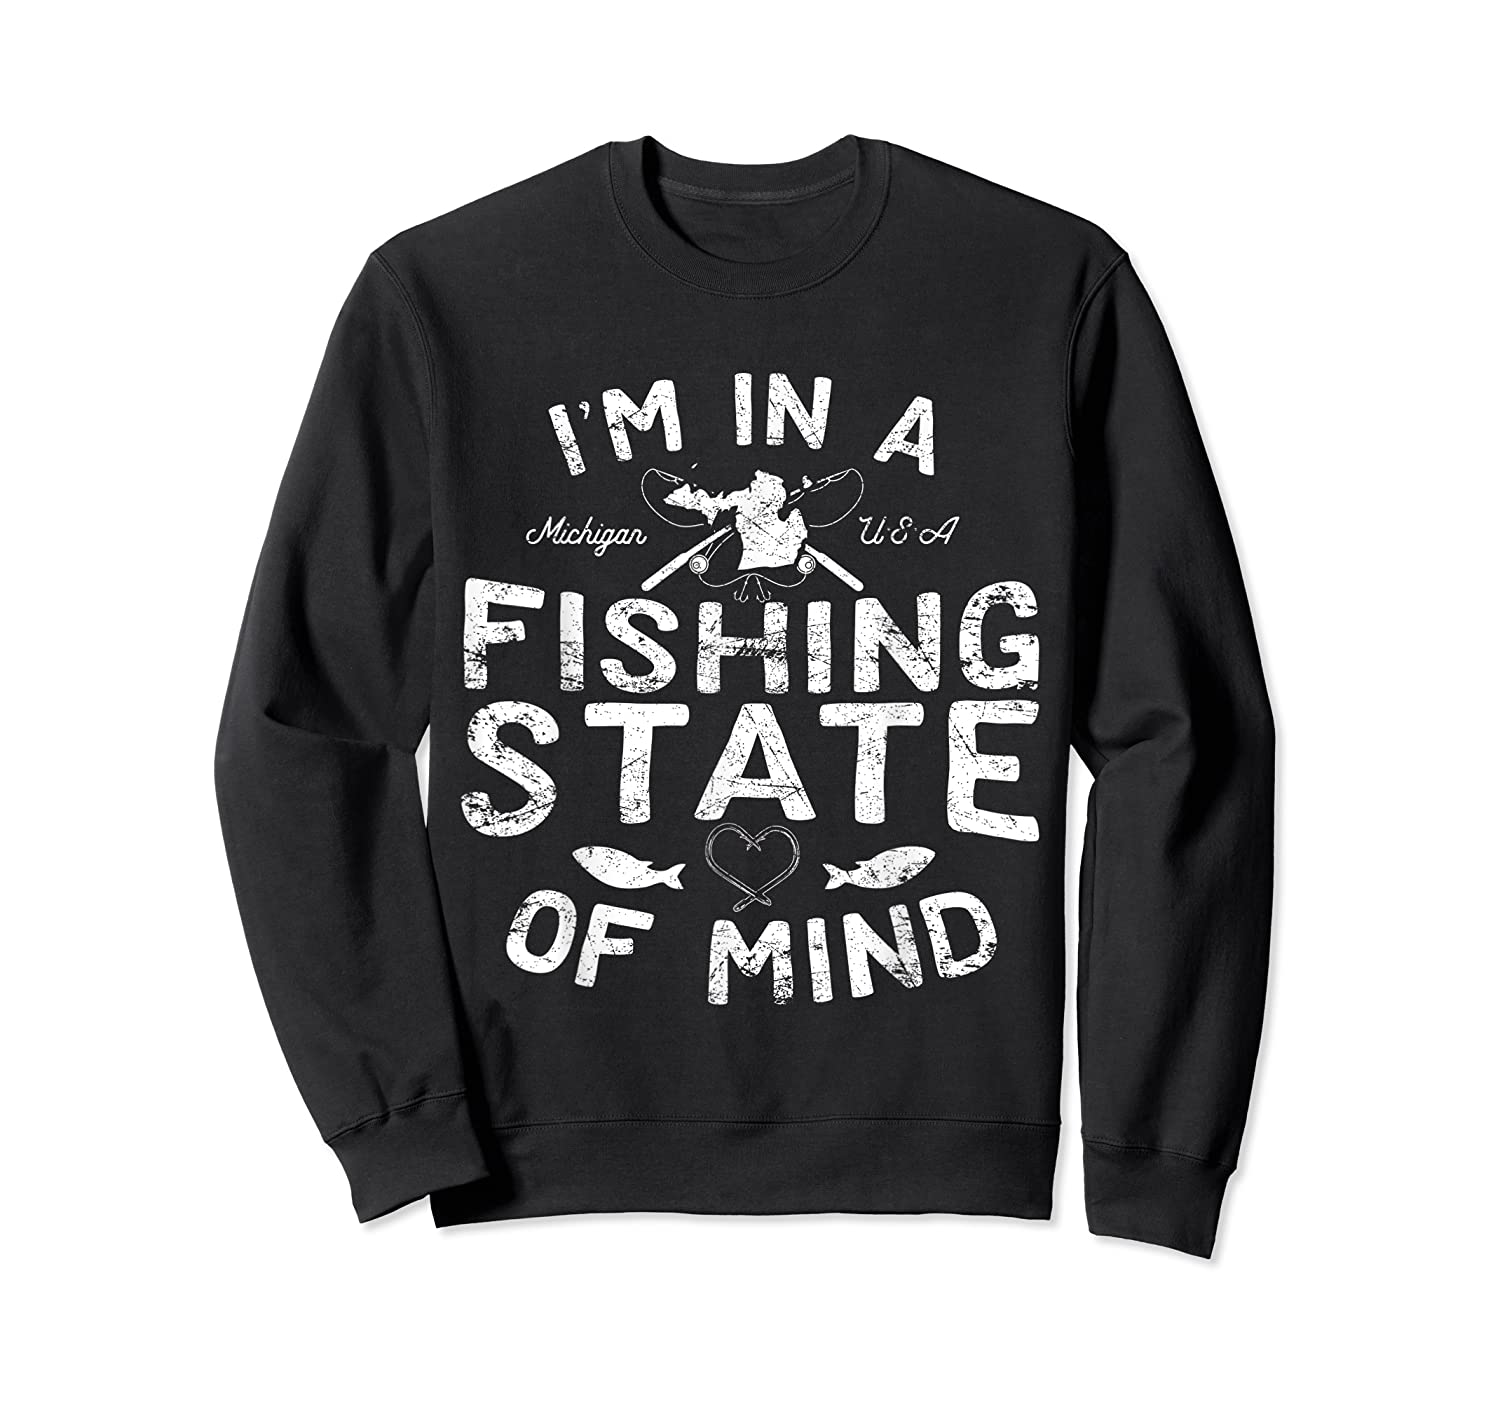 Michigan I'm In A Fishing State Of Mind Vacation Shirts Crewneck Sweater